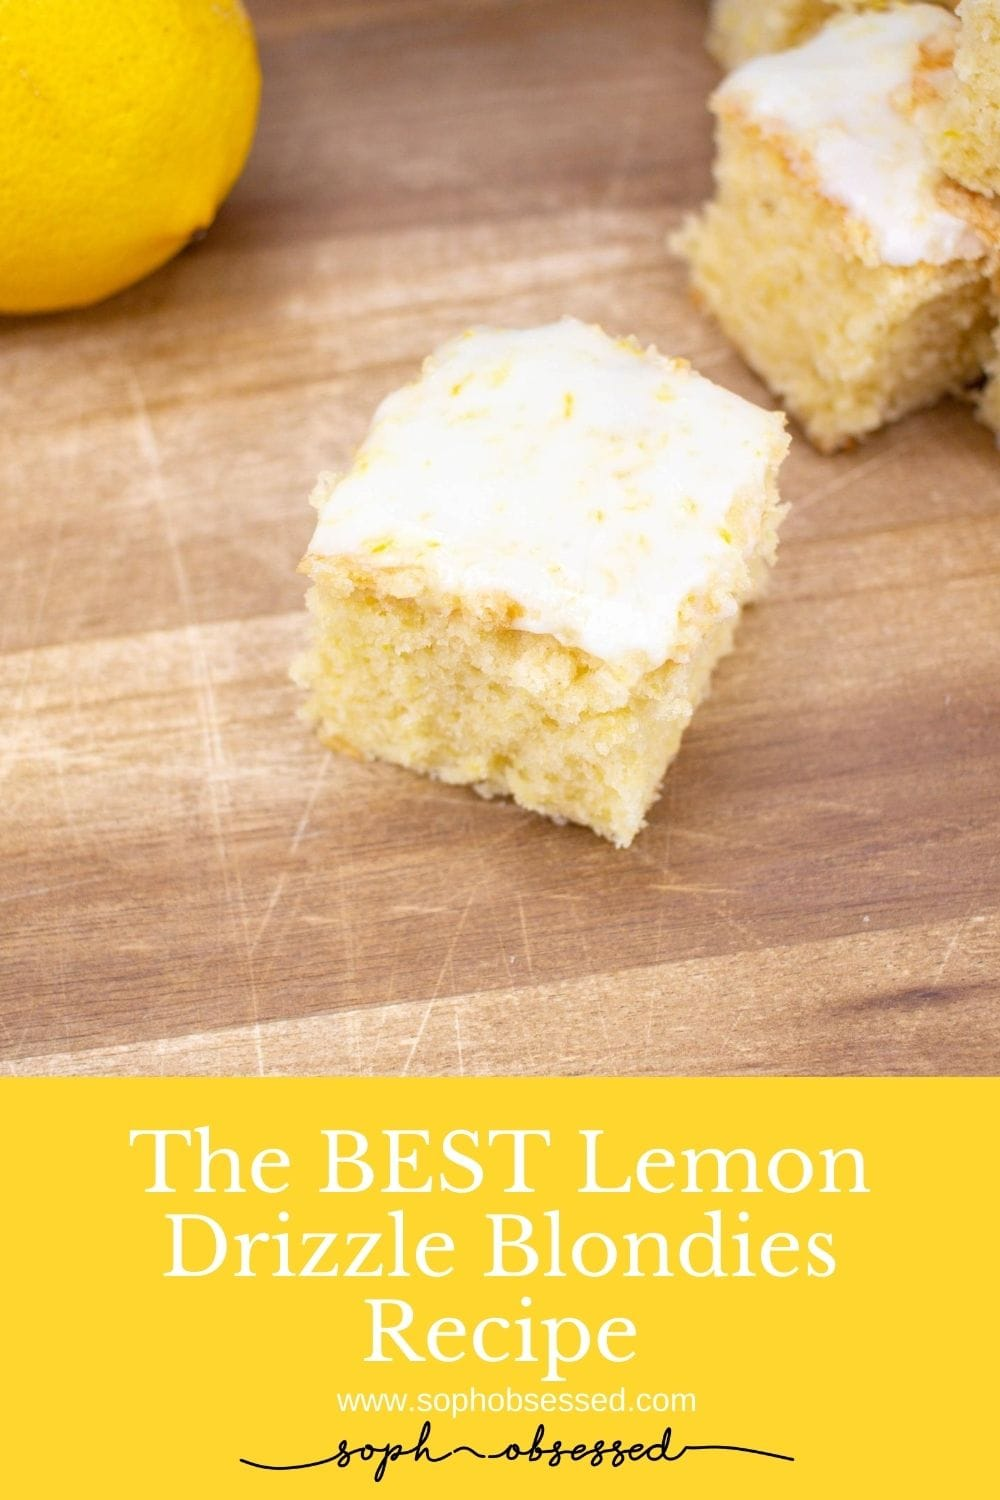 The best lemon drizzle blondies recipe